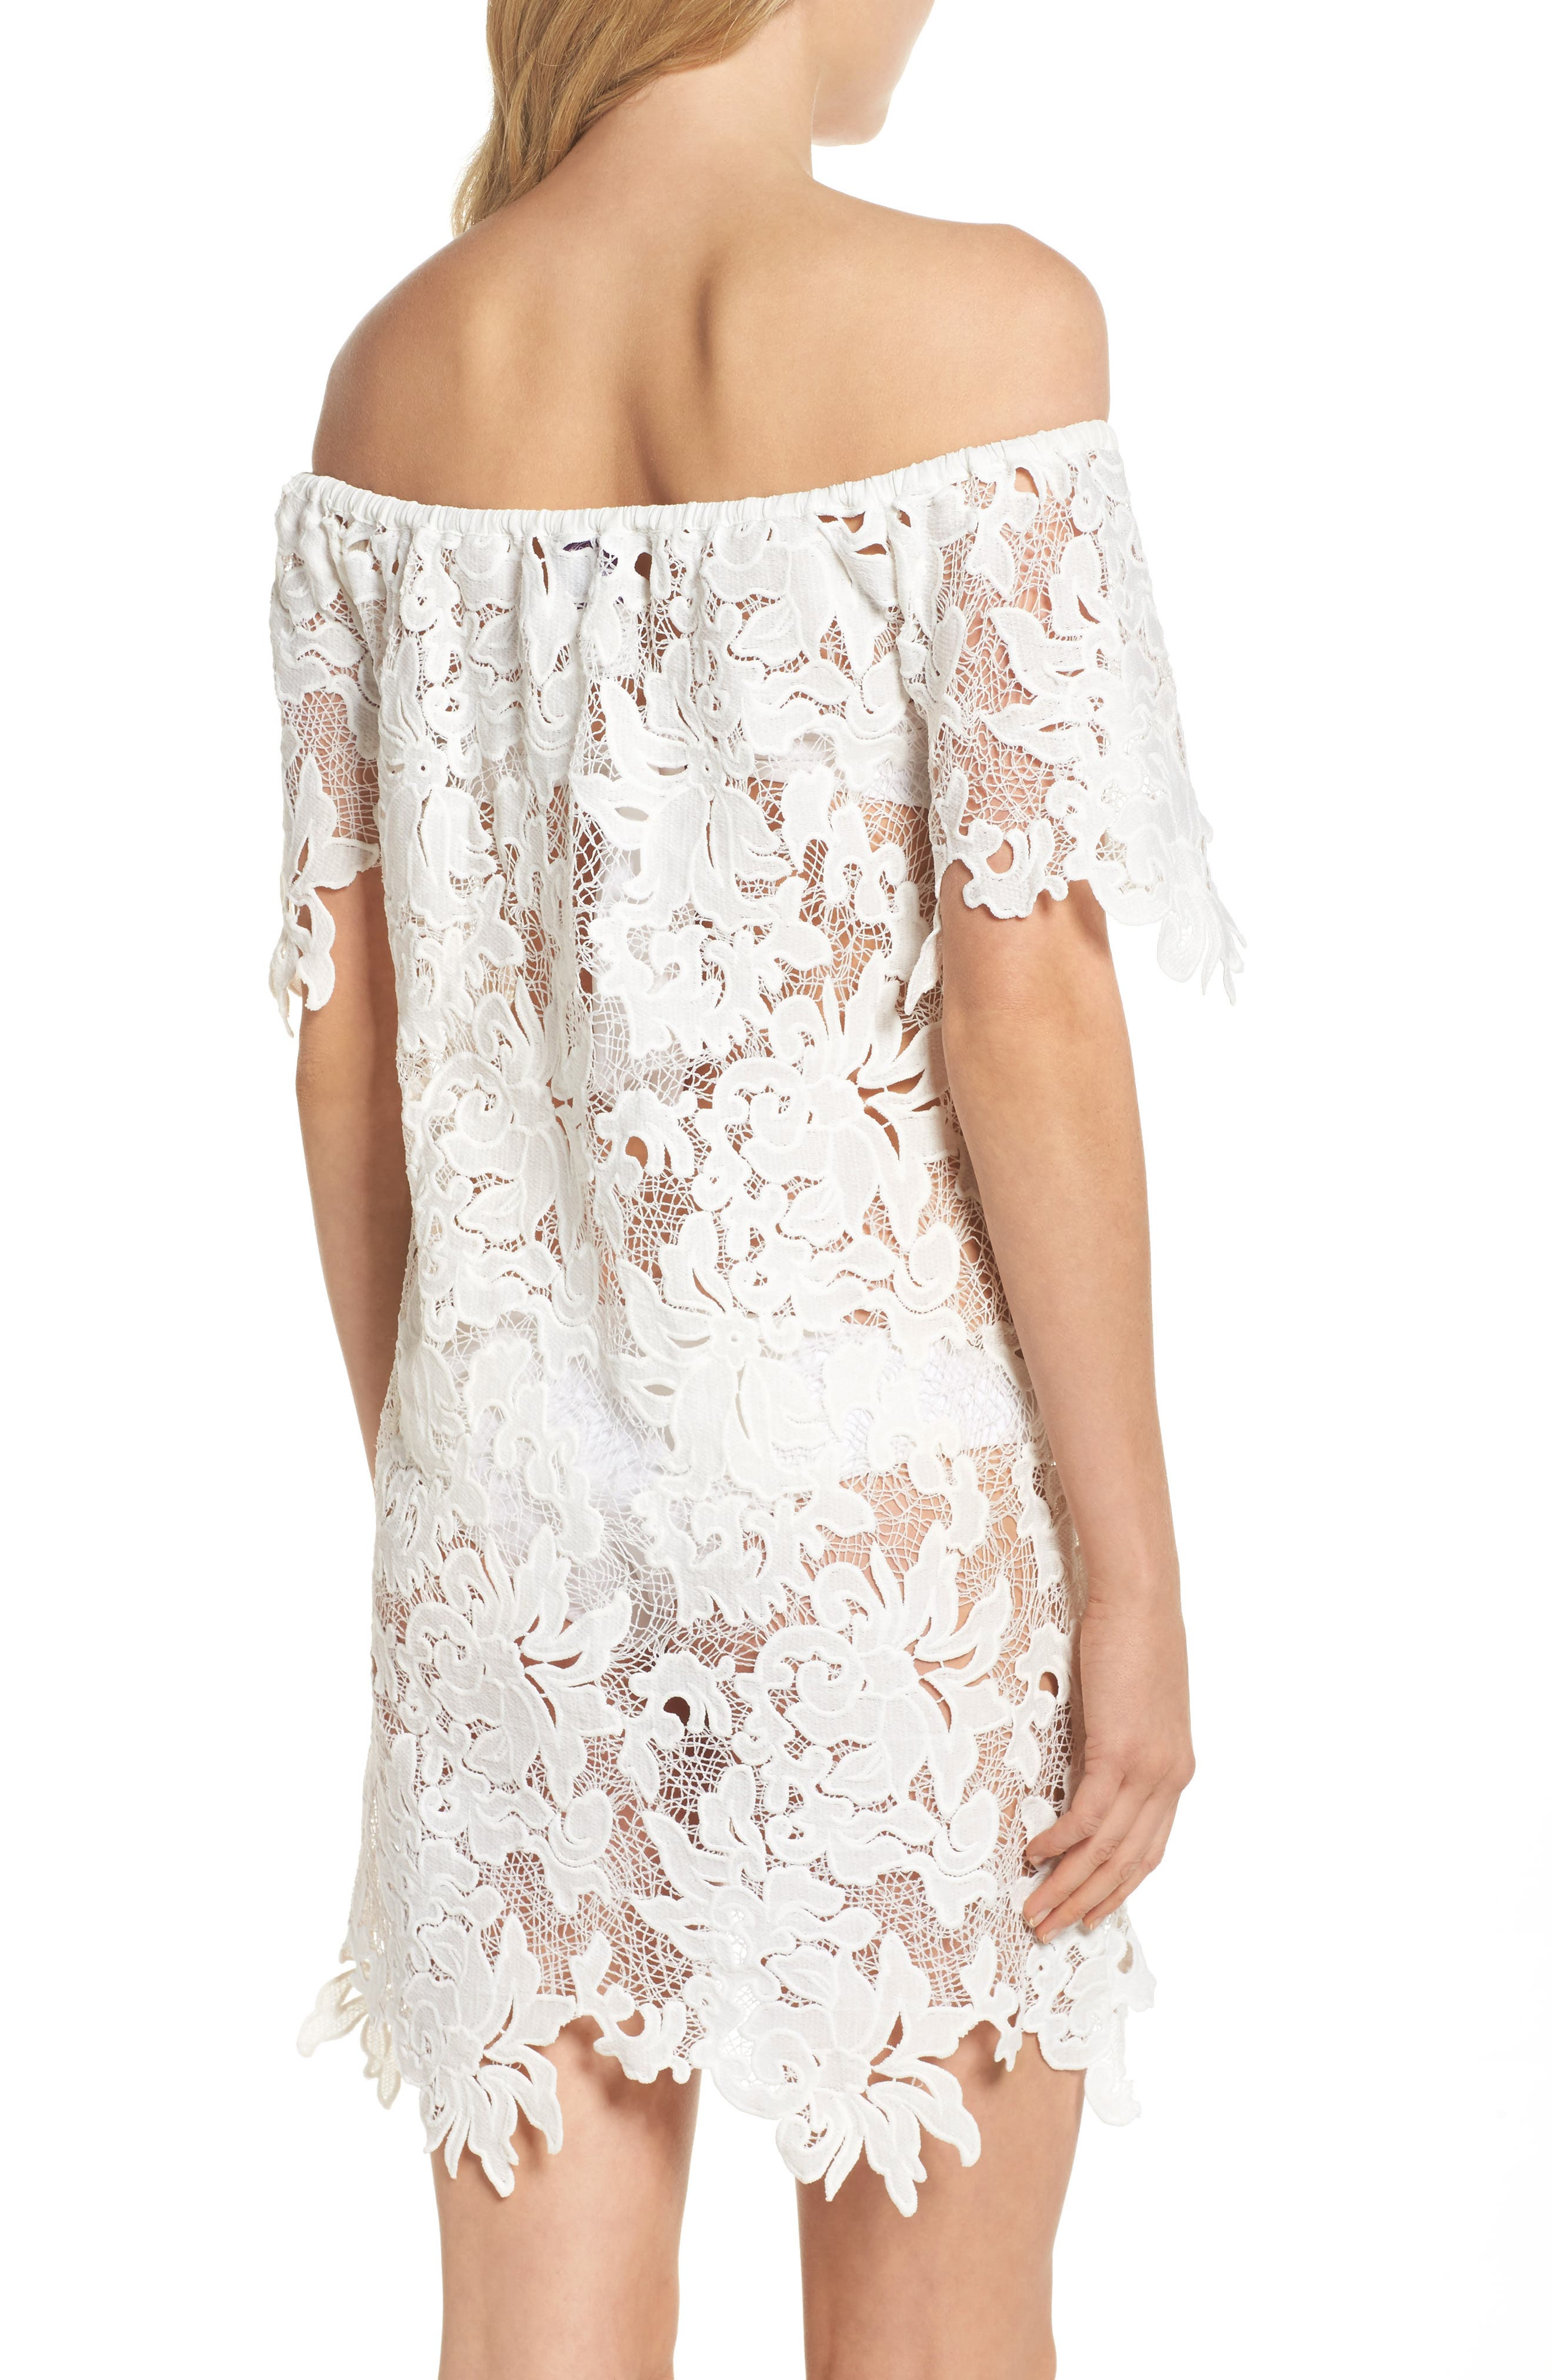 Ode Rosette Lace Cover-Up Dress,                             Alternate thumbnail 2, color,                             White